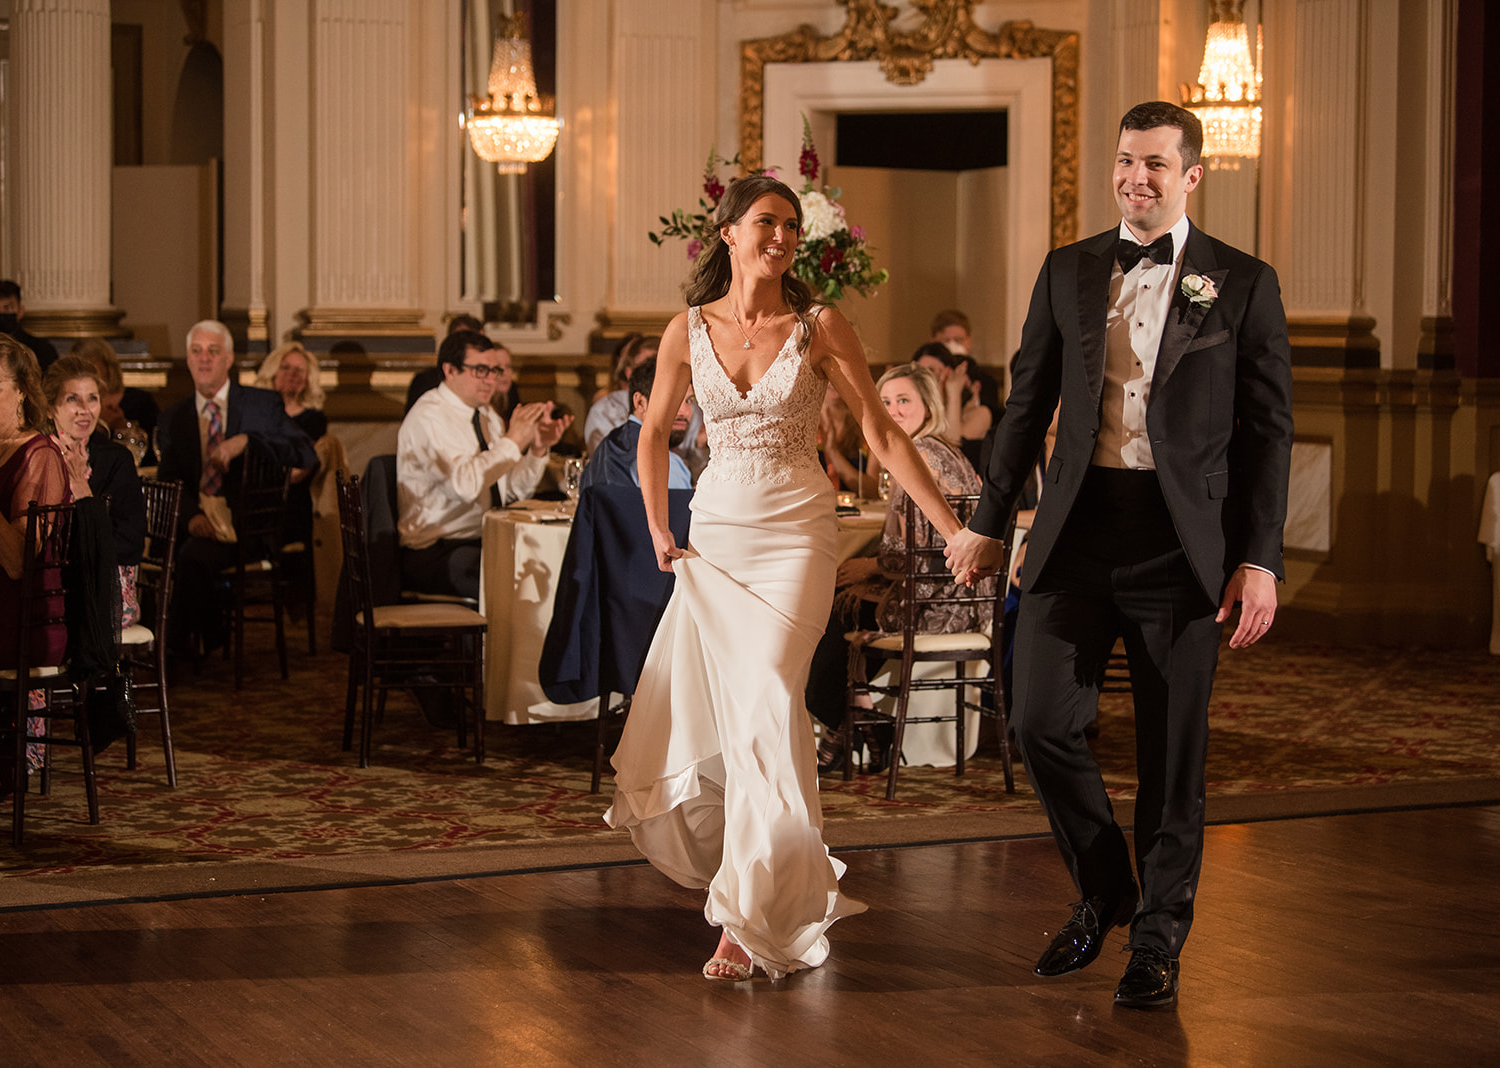 bride and groom make their grand entrance at their wedding reception